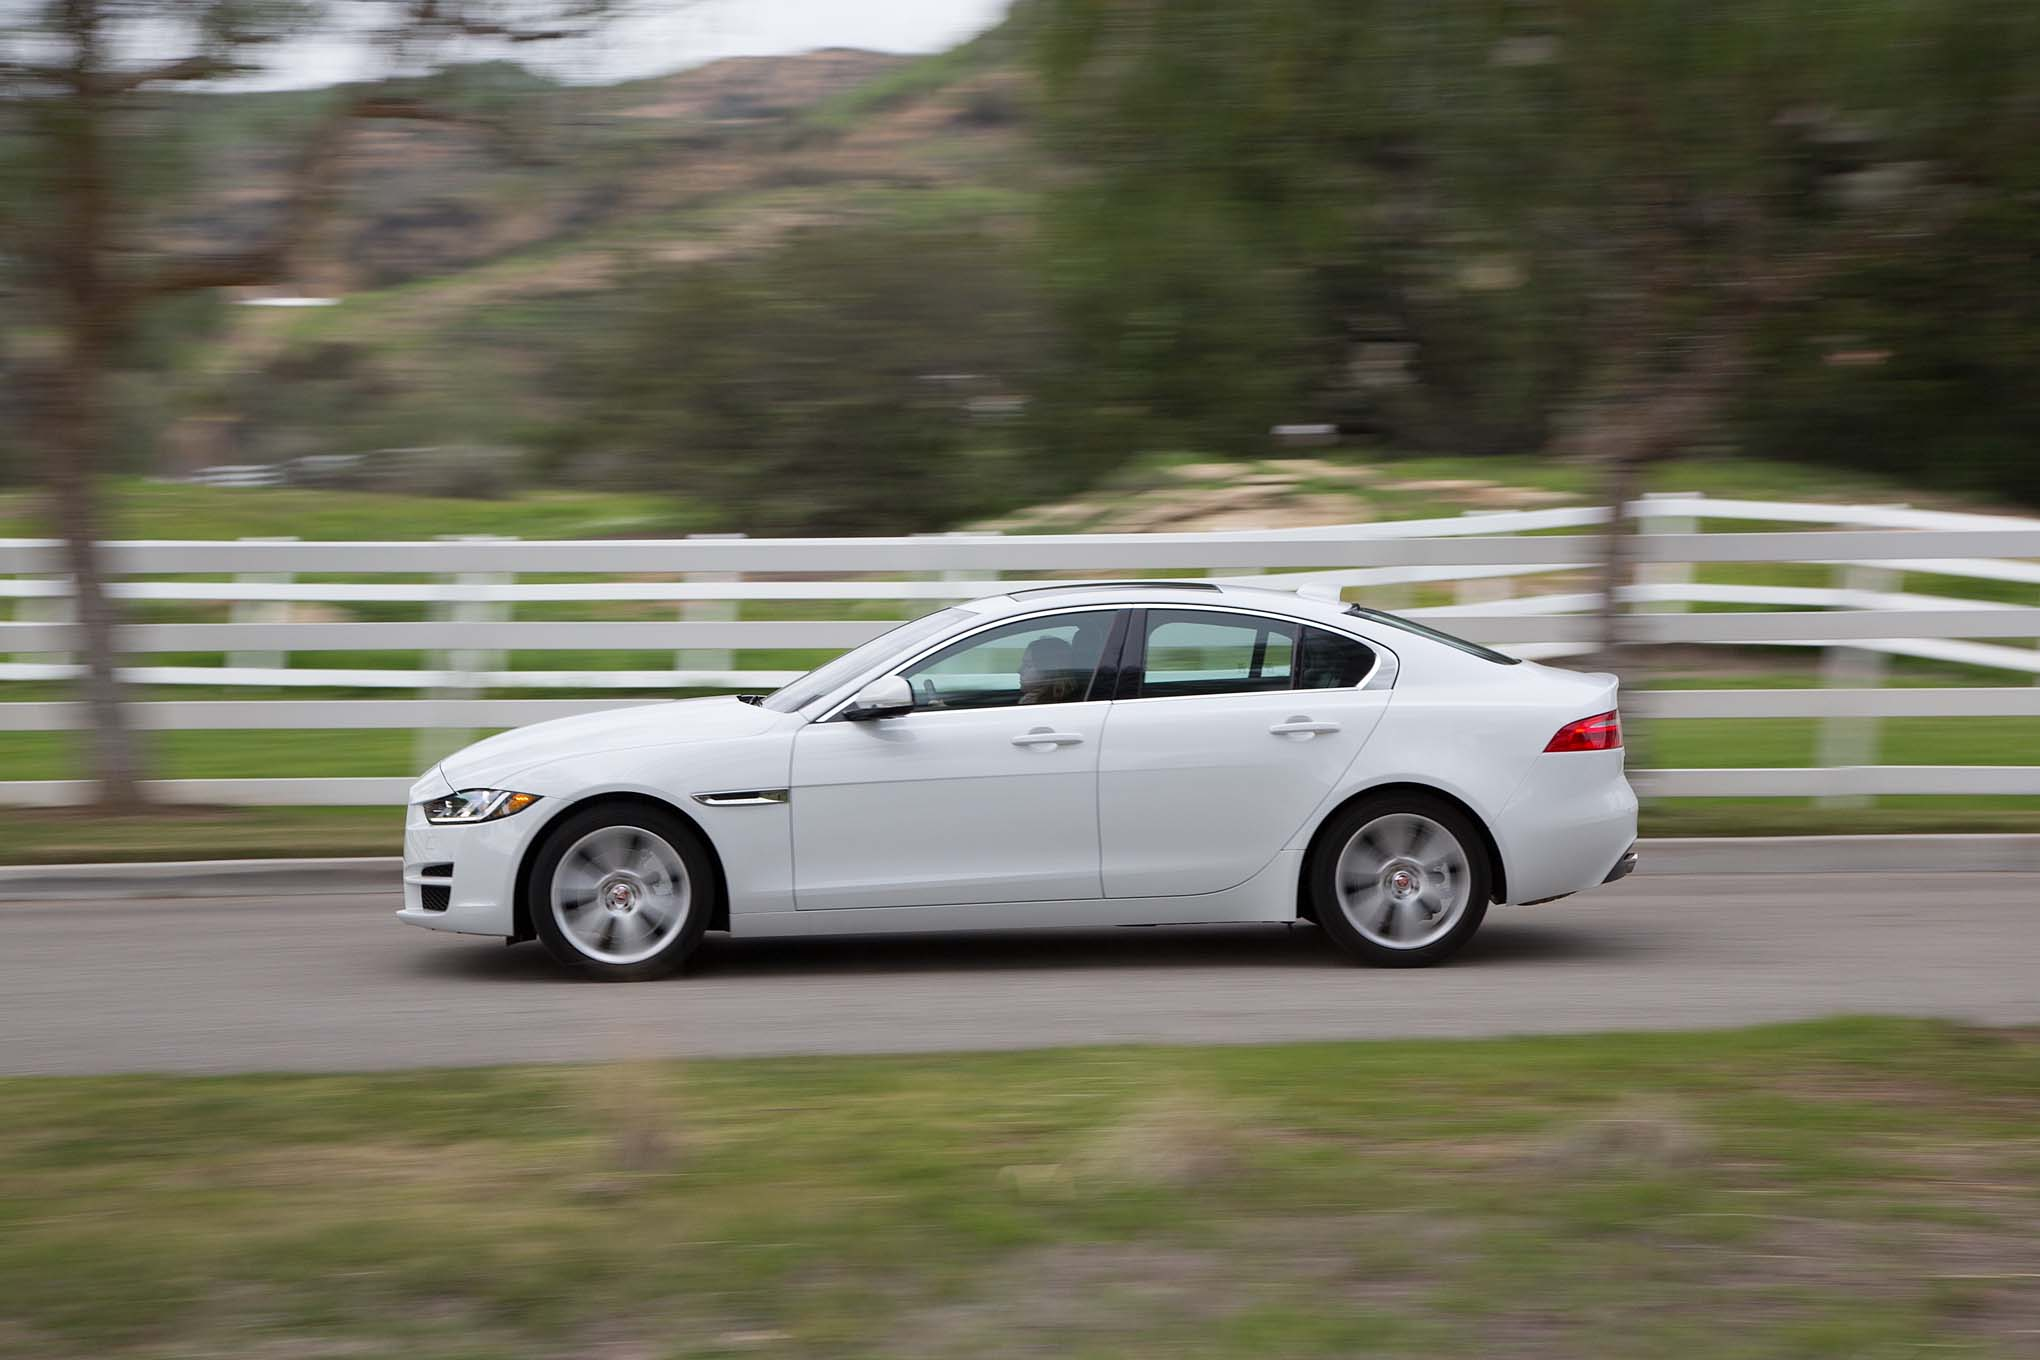 2017 Jaguar XE 25T side in motion